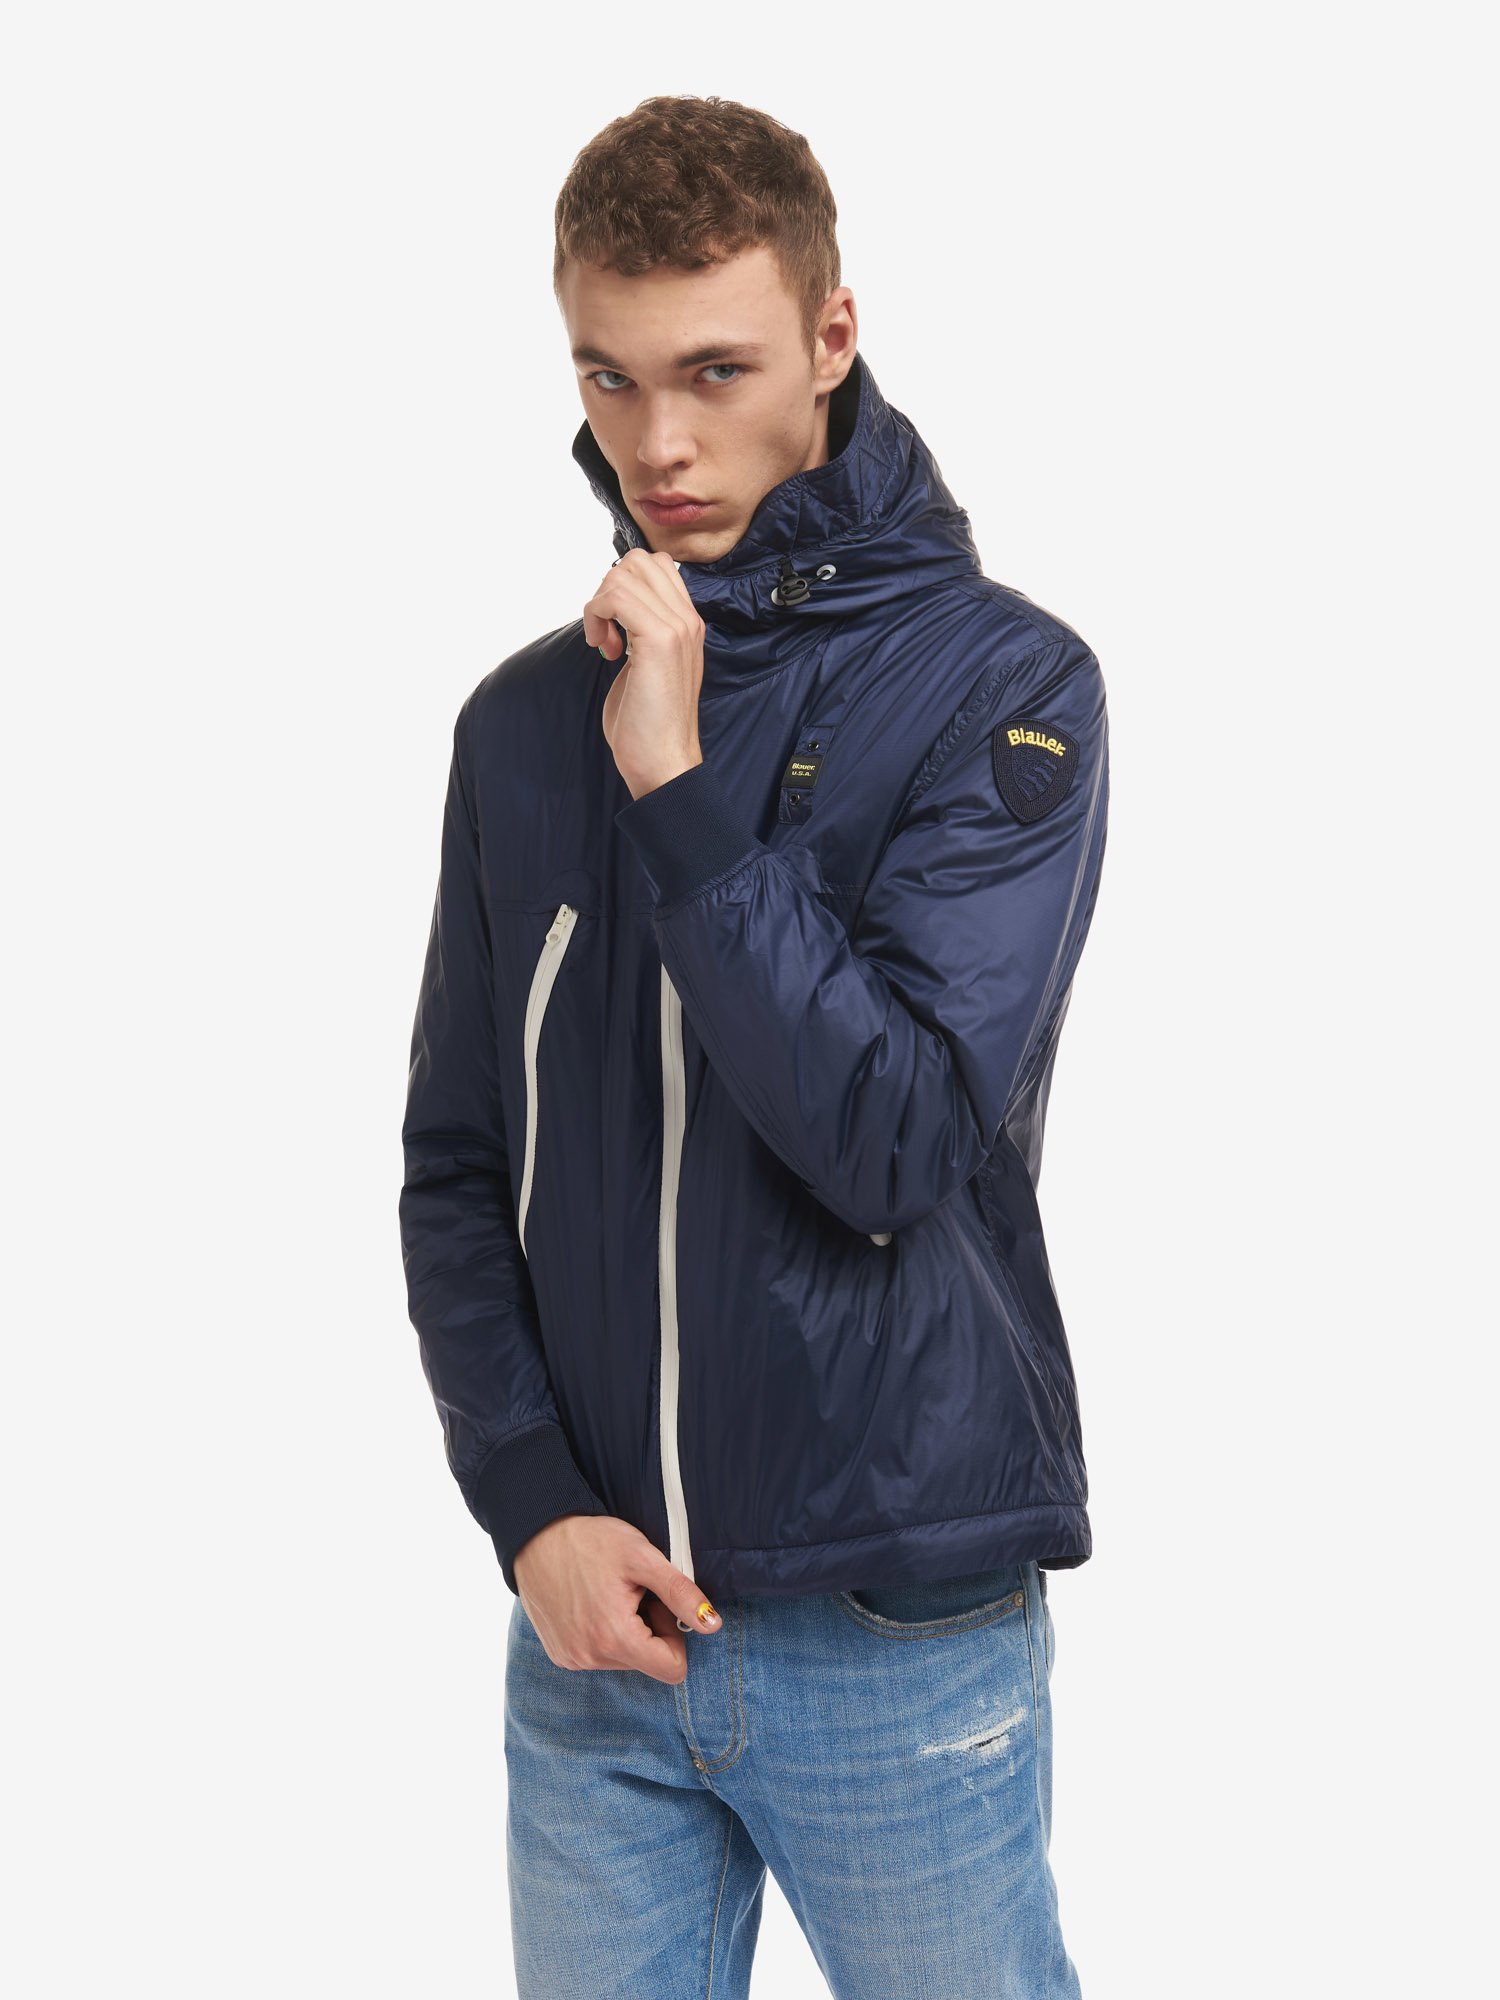 LEROY SMOOTH DOWN JACKET - Blauer